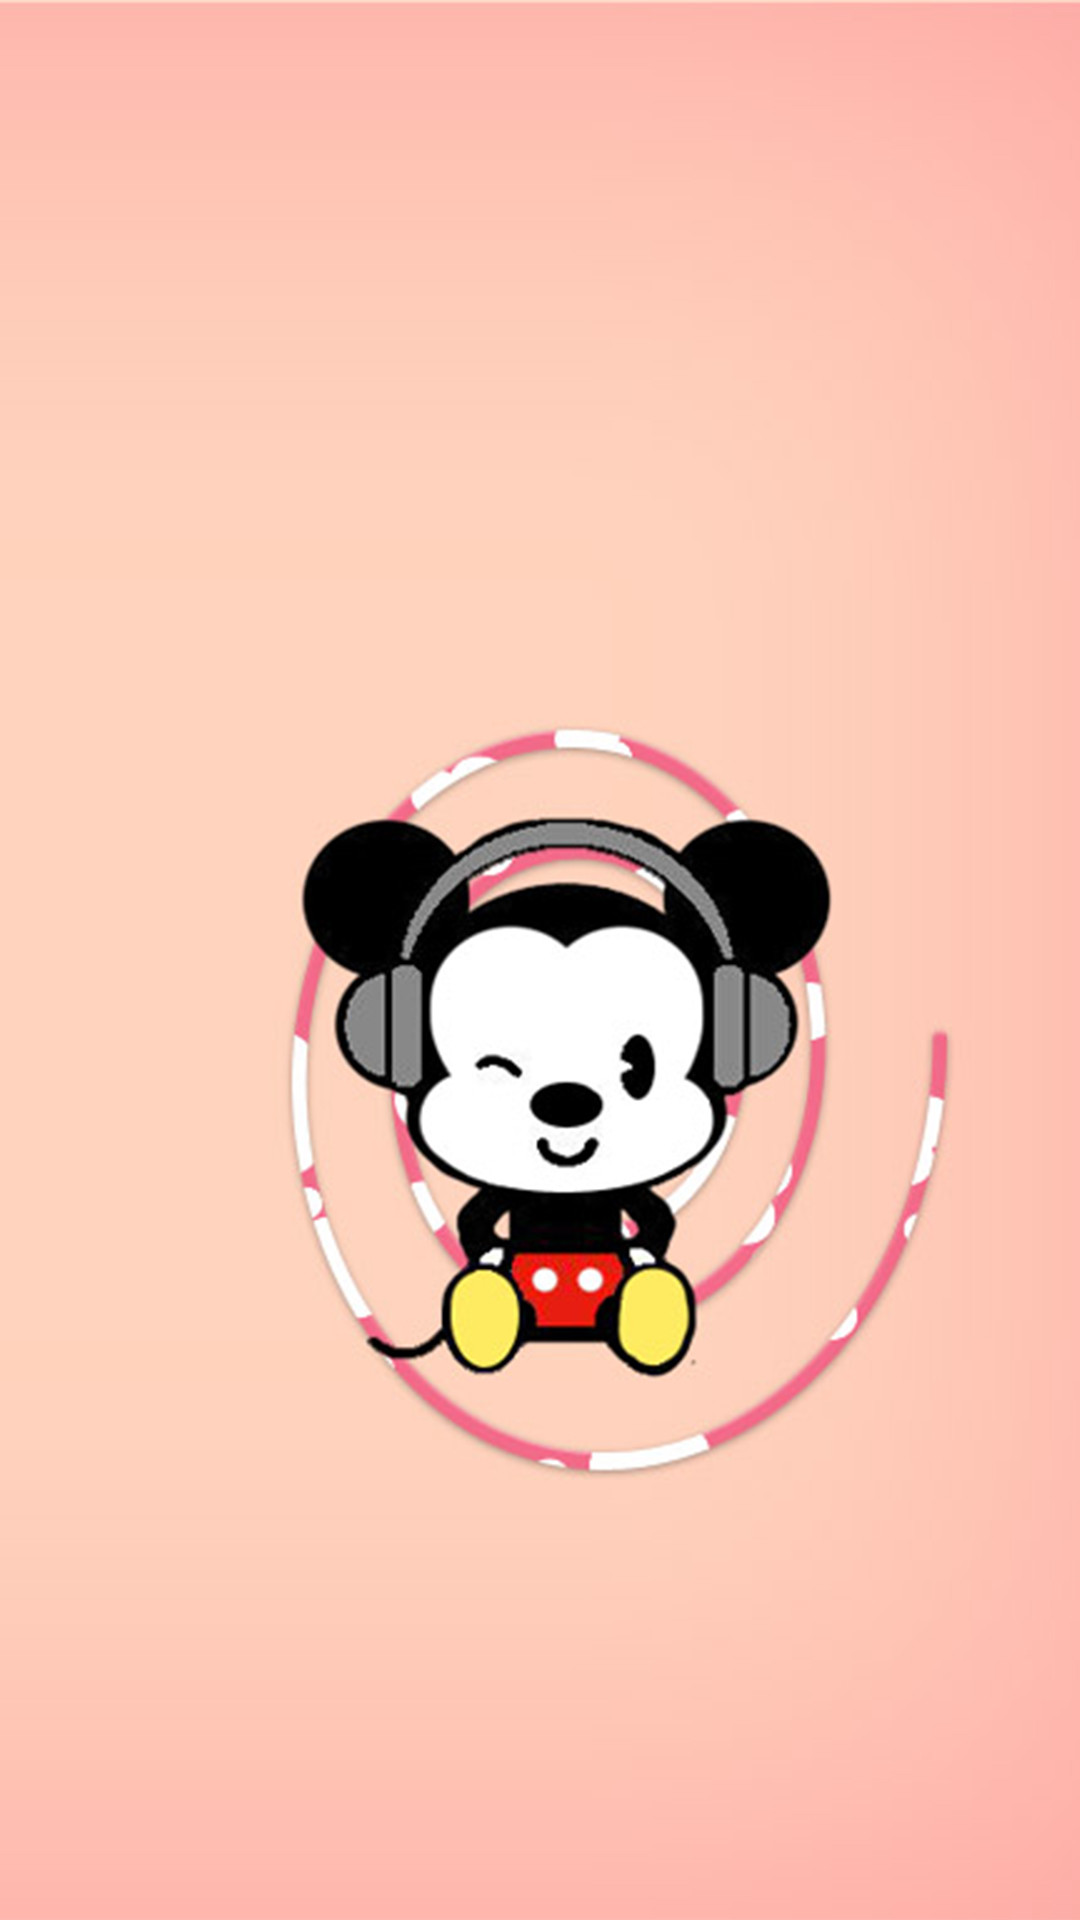 Cute Mickey Mouse Wallpaper Hd Download Cute Mickey Mouse